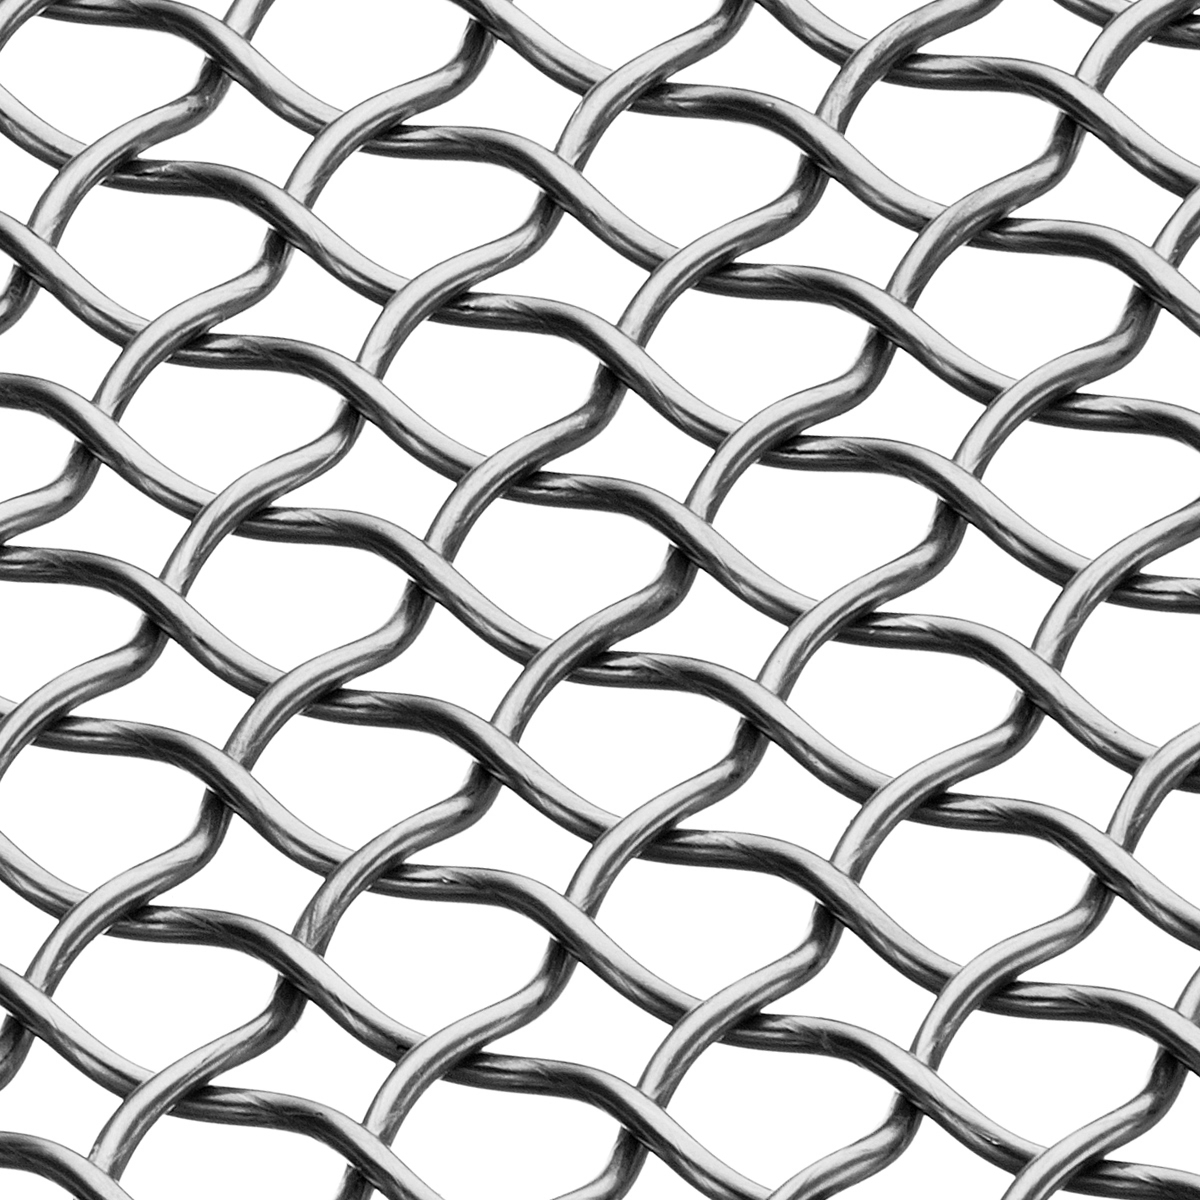 1200x1200 Banker Wire Pattern M44 9 Large Weave Architectural Wire Mesh